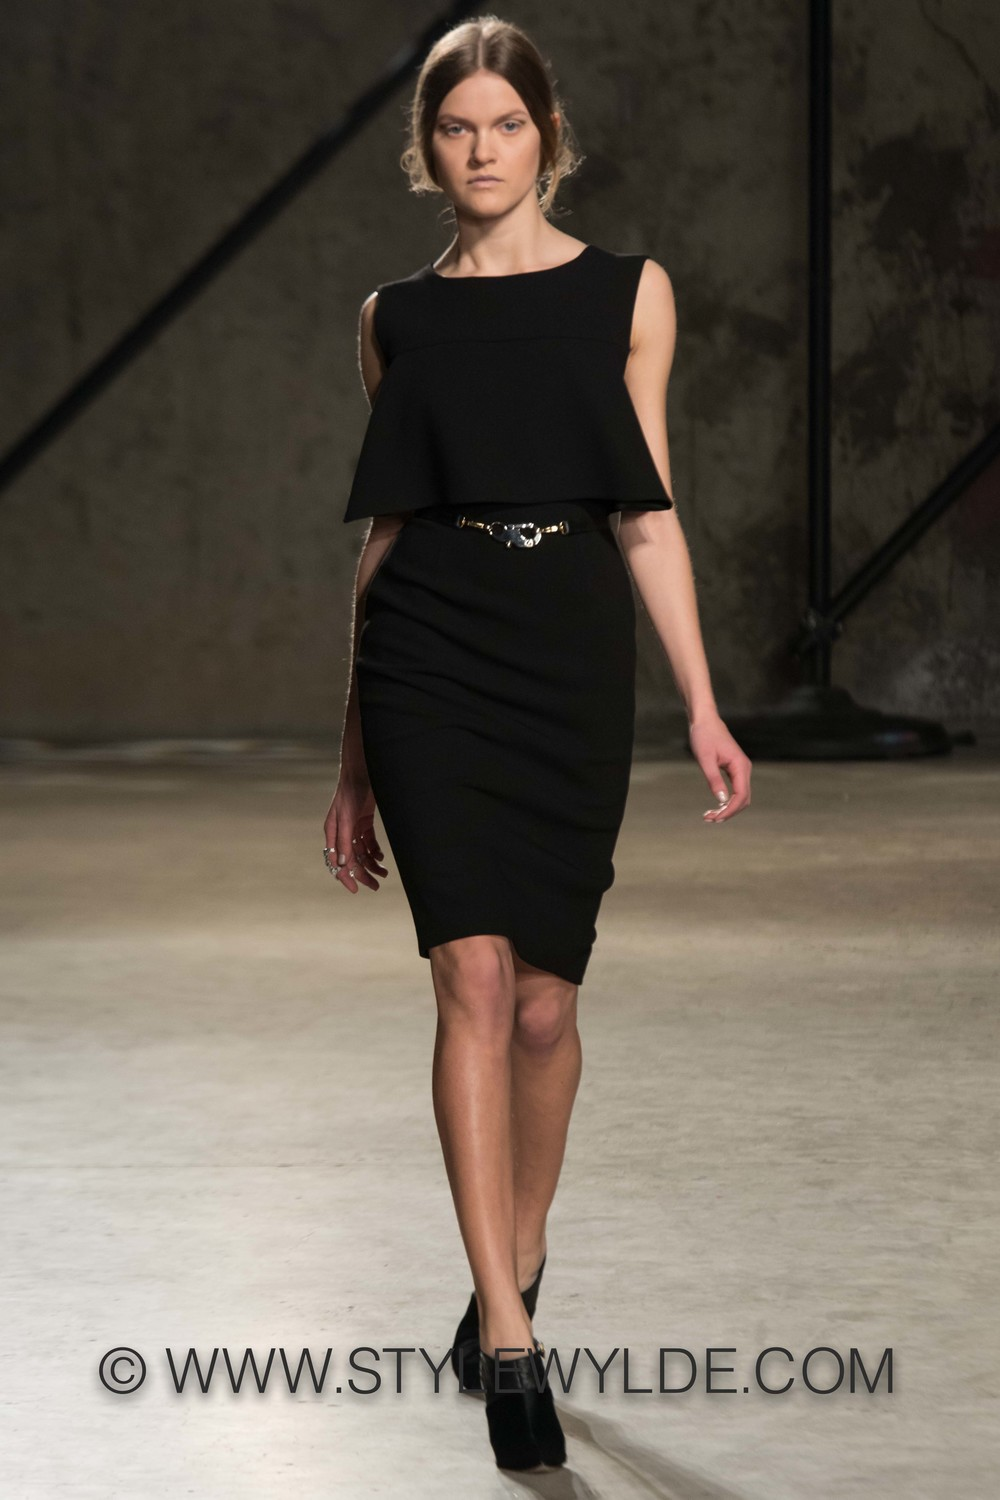 stylewylde_sally_lapointe_fw_2014-9.jpg